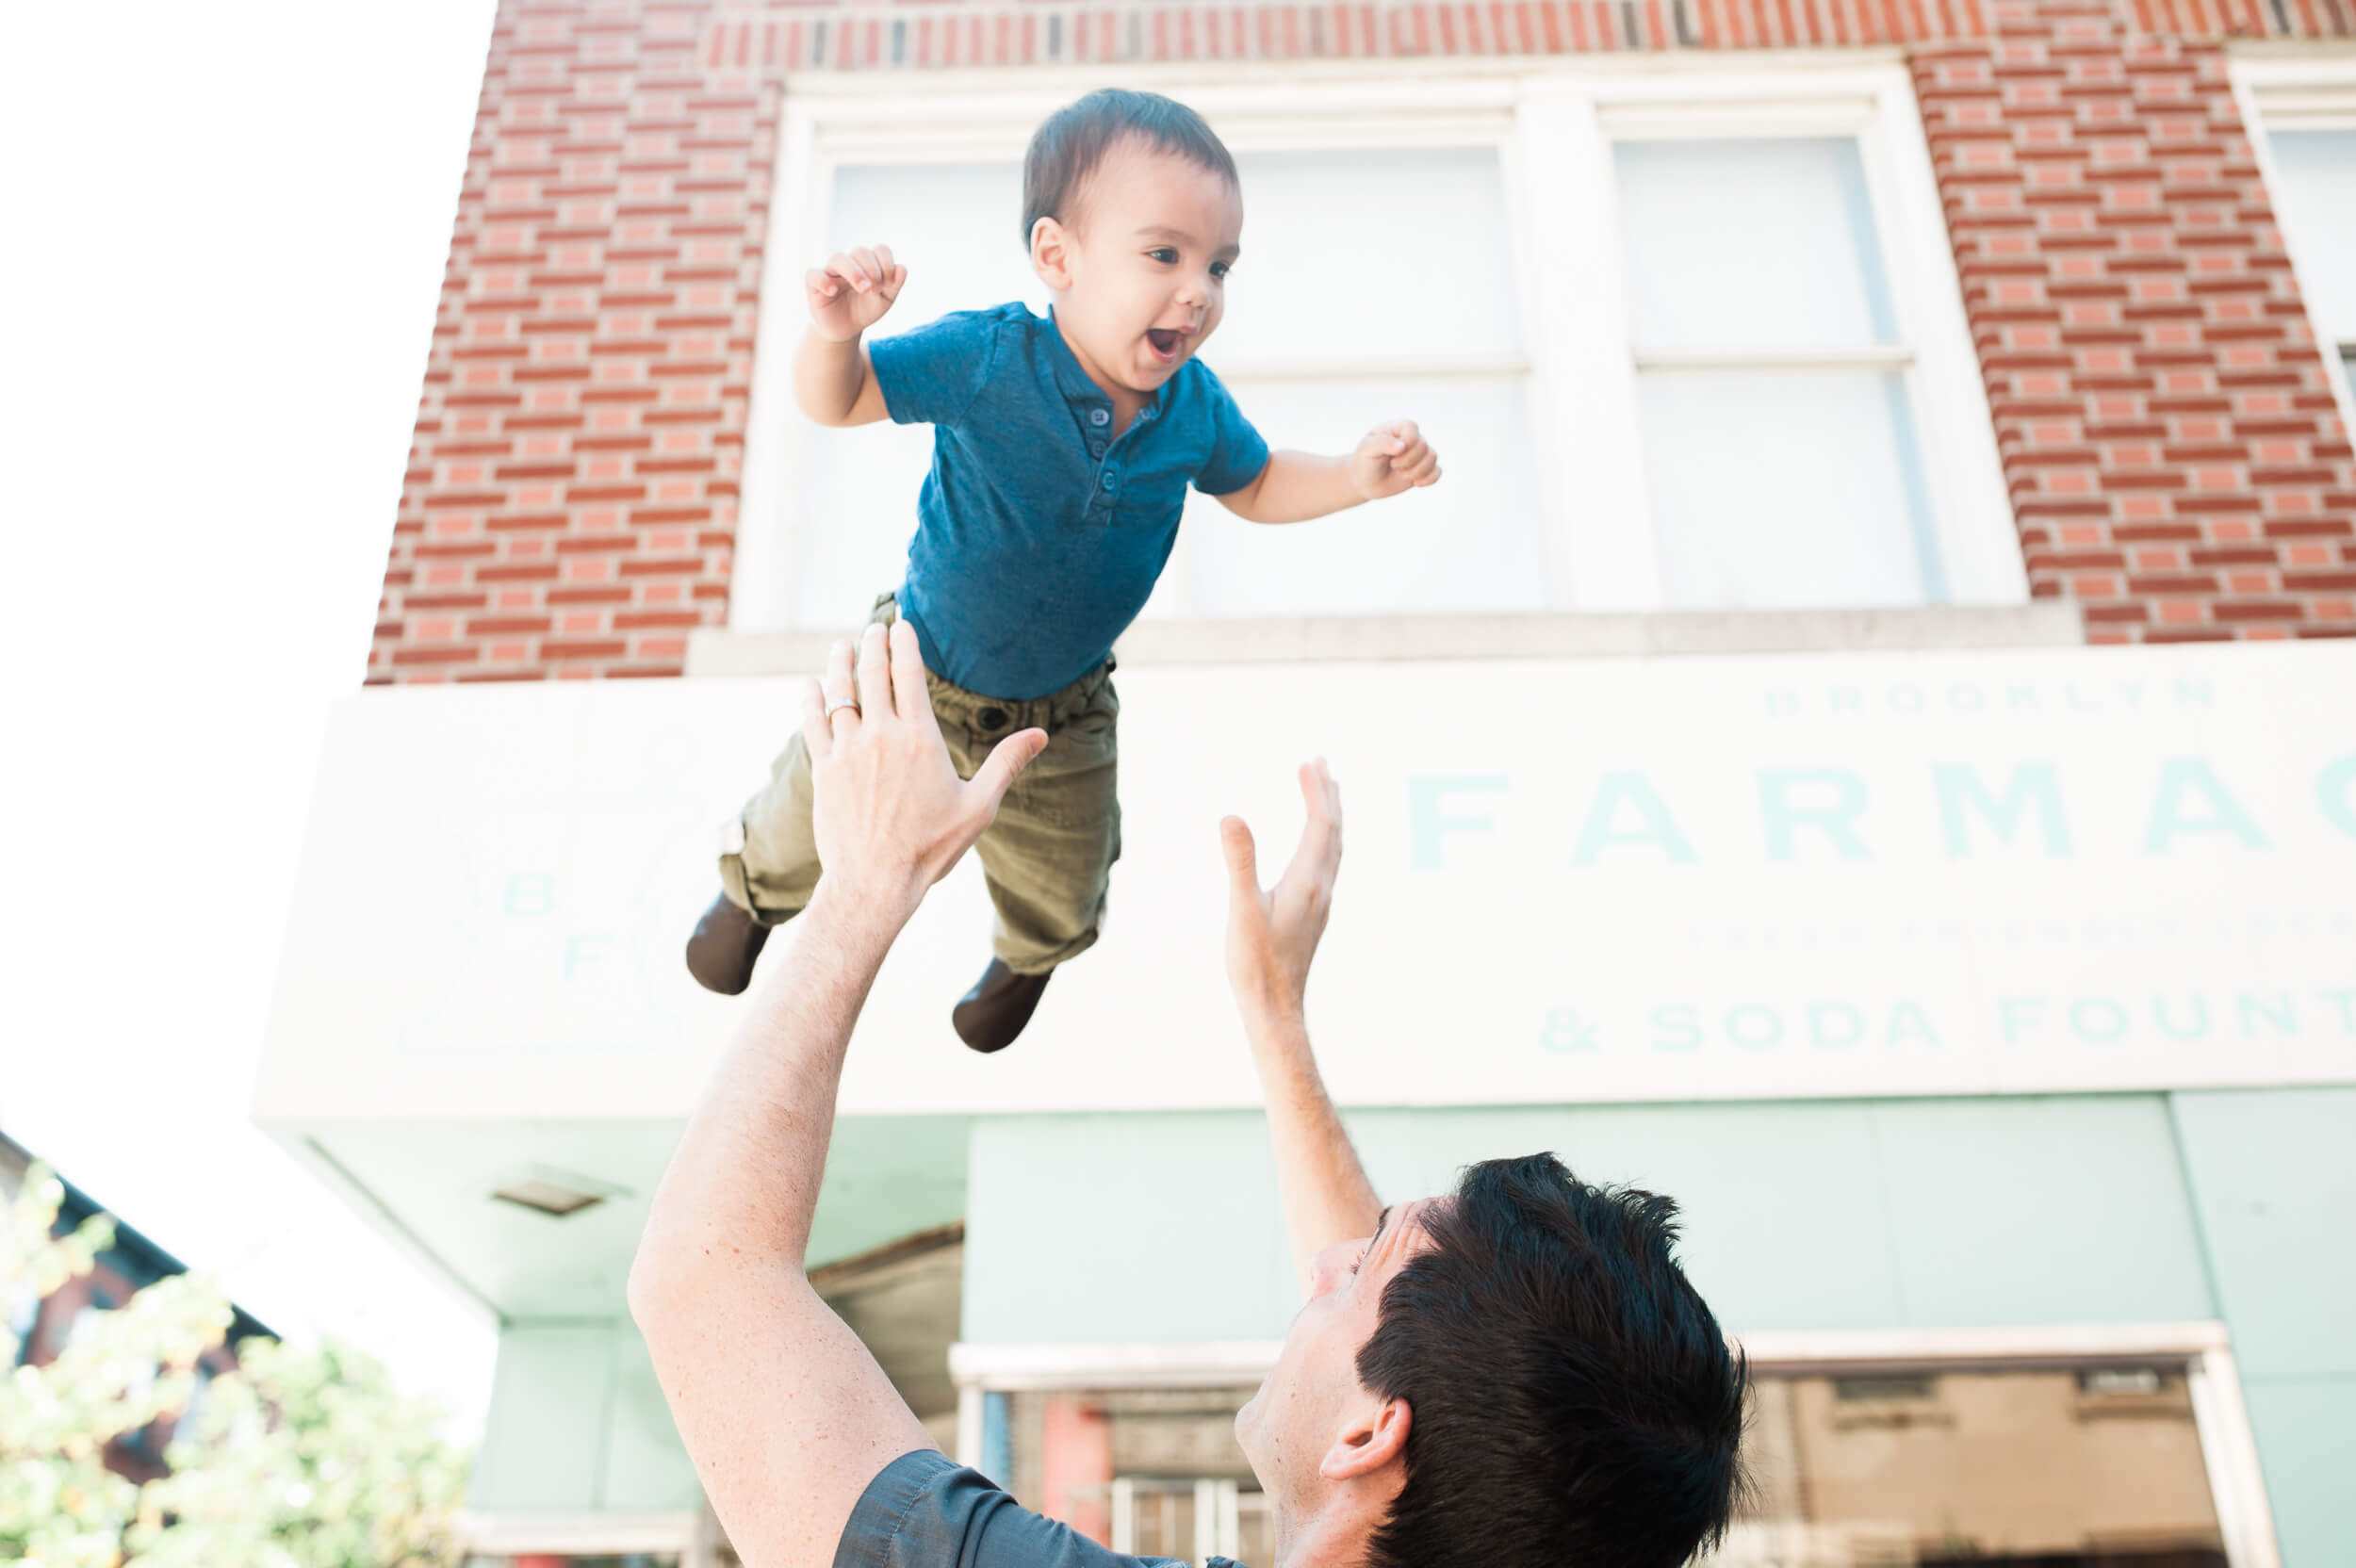 Father tossing baby in the air in Cobble Hill at Brooklyn Farmacy in Brooklyn New York family photography lifestyle session by Lindsey Victoria Photography